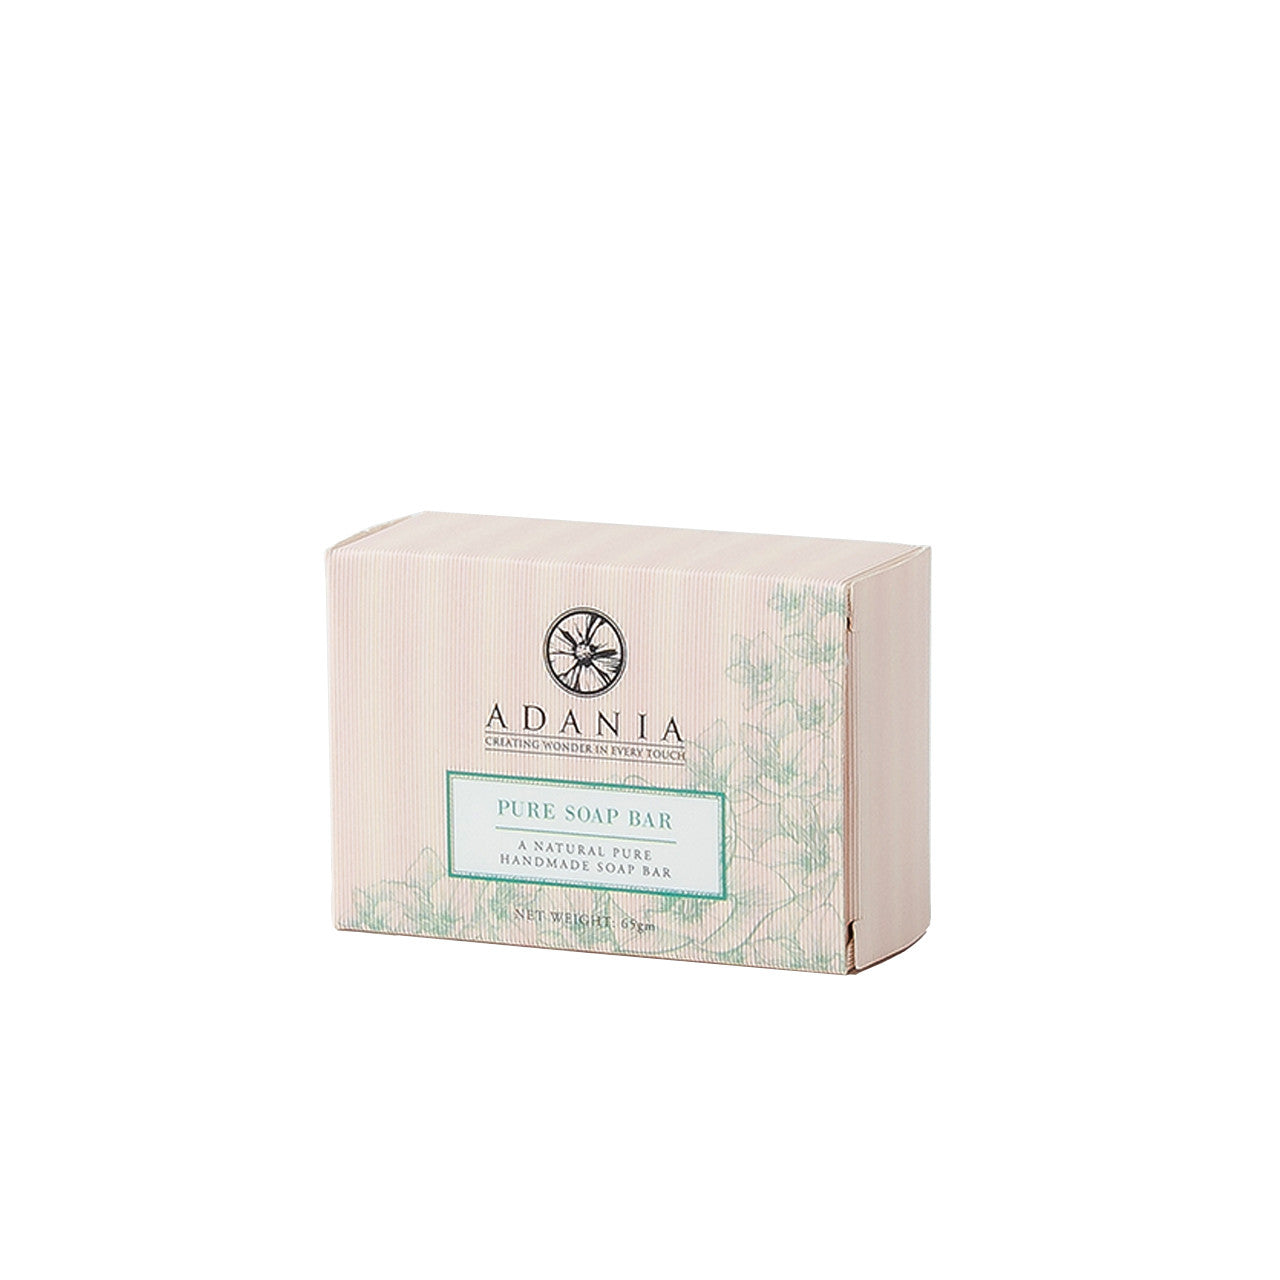 ADANIA Pure Soap Bar